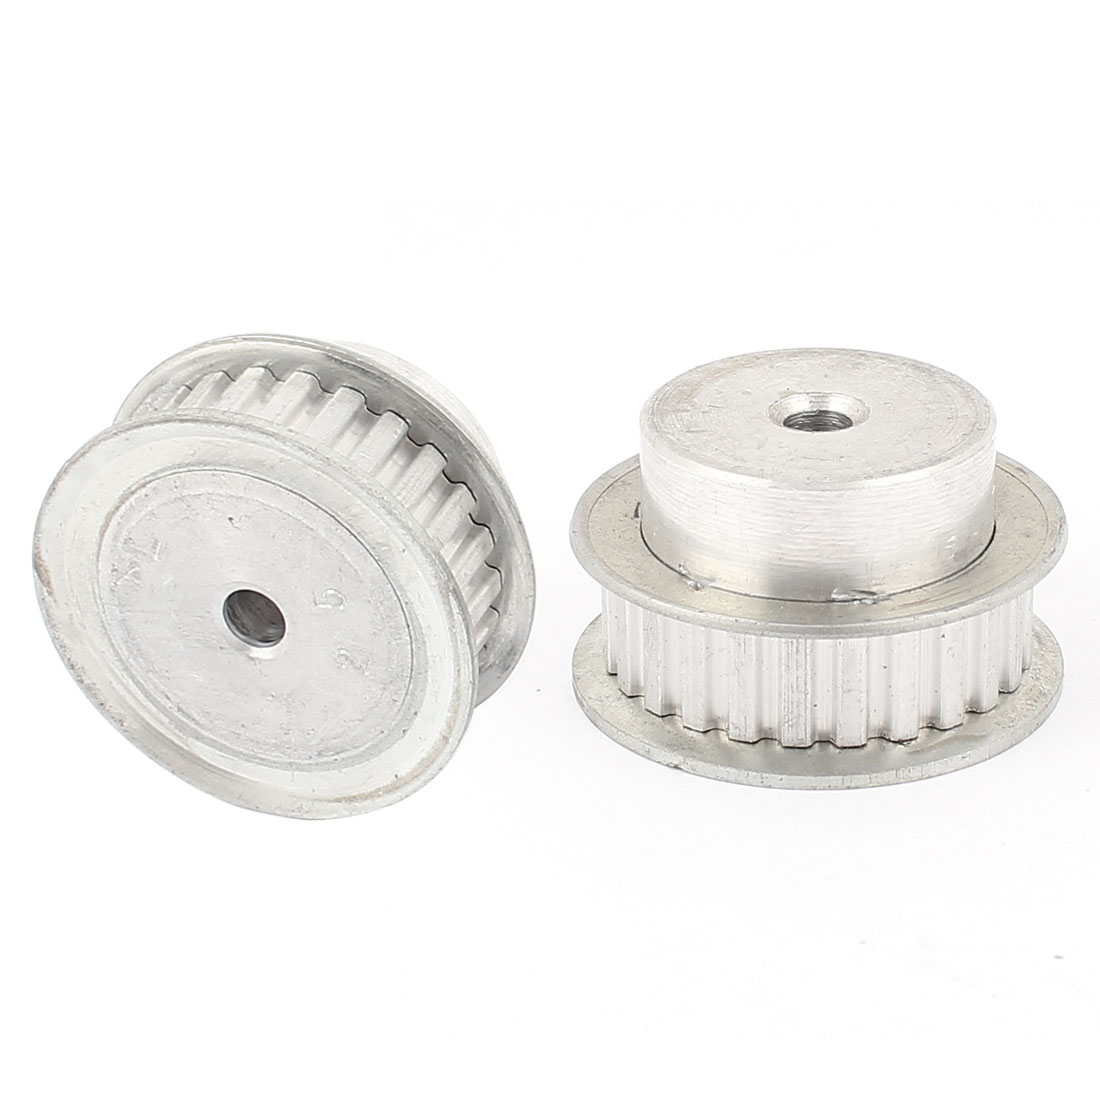 2Pcs XL25 25 Teeth 5mm Pitch 6mm Bore Aluminum DIT Robot Synchronous Timing Pulley for 11mm Width Belt